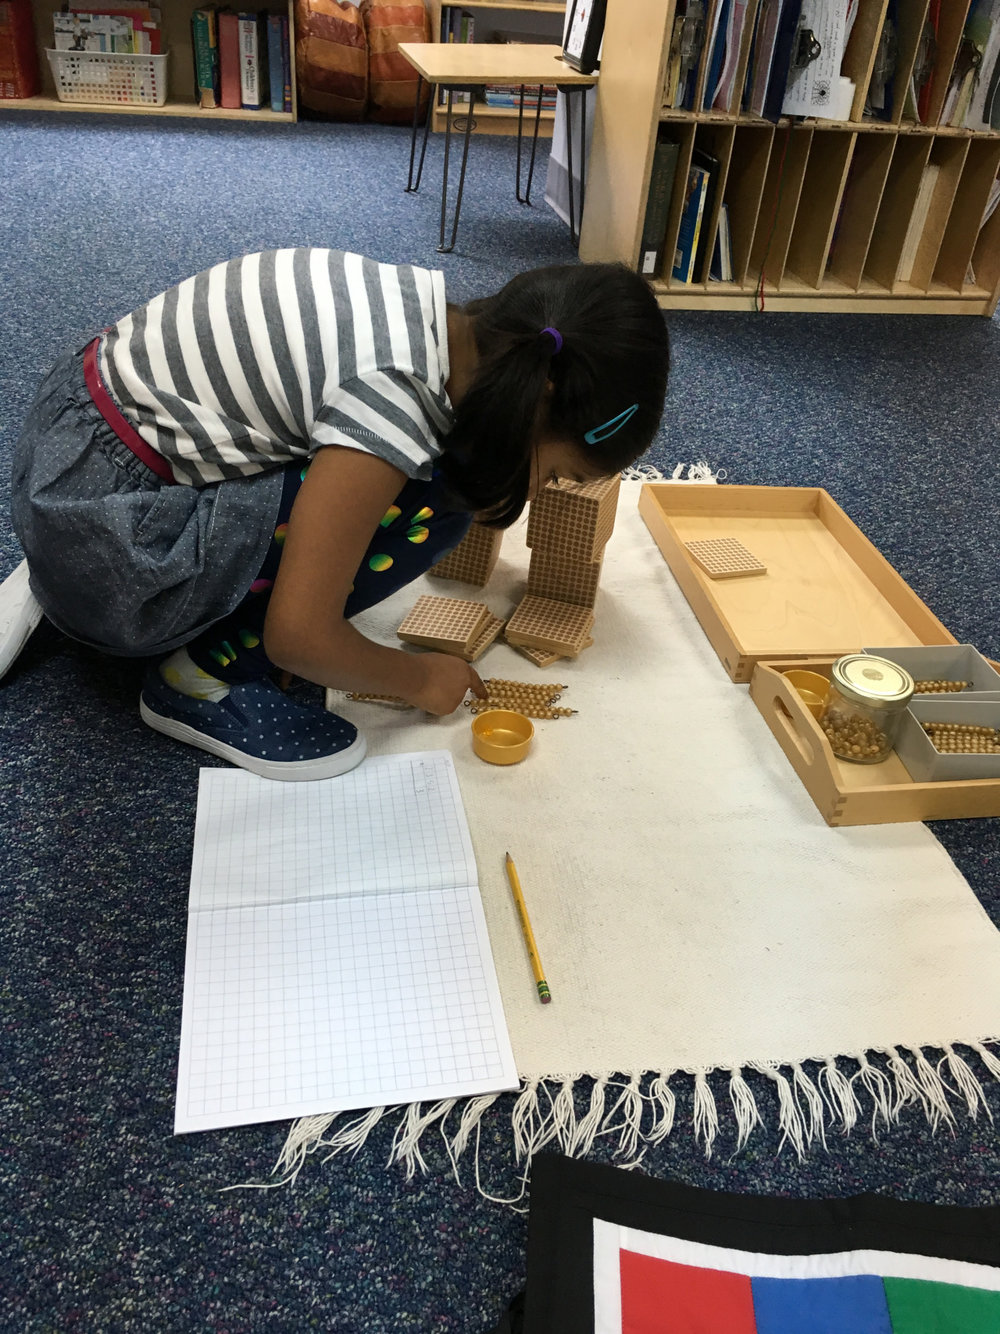 A first grade Lower Elementary West student used the Golden Beads to work on multiplication problem solving.  The Golden Beads material is a staple in every Montessori classroom and is used by students at all academic levels throughout the Primary Math curriculum, from reading numbers to more complex operations.